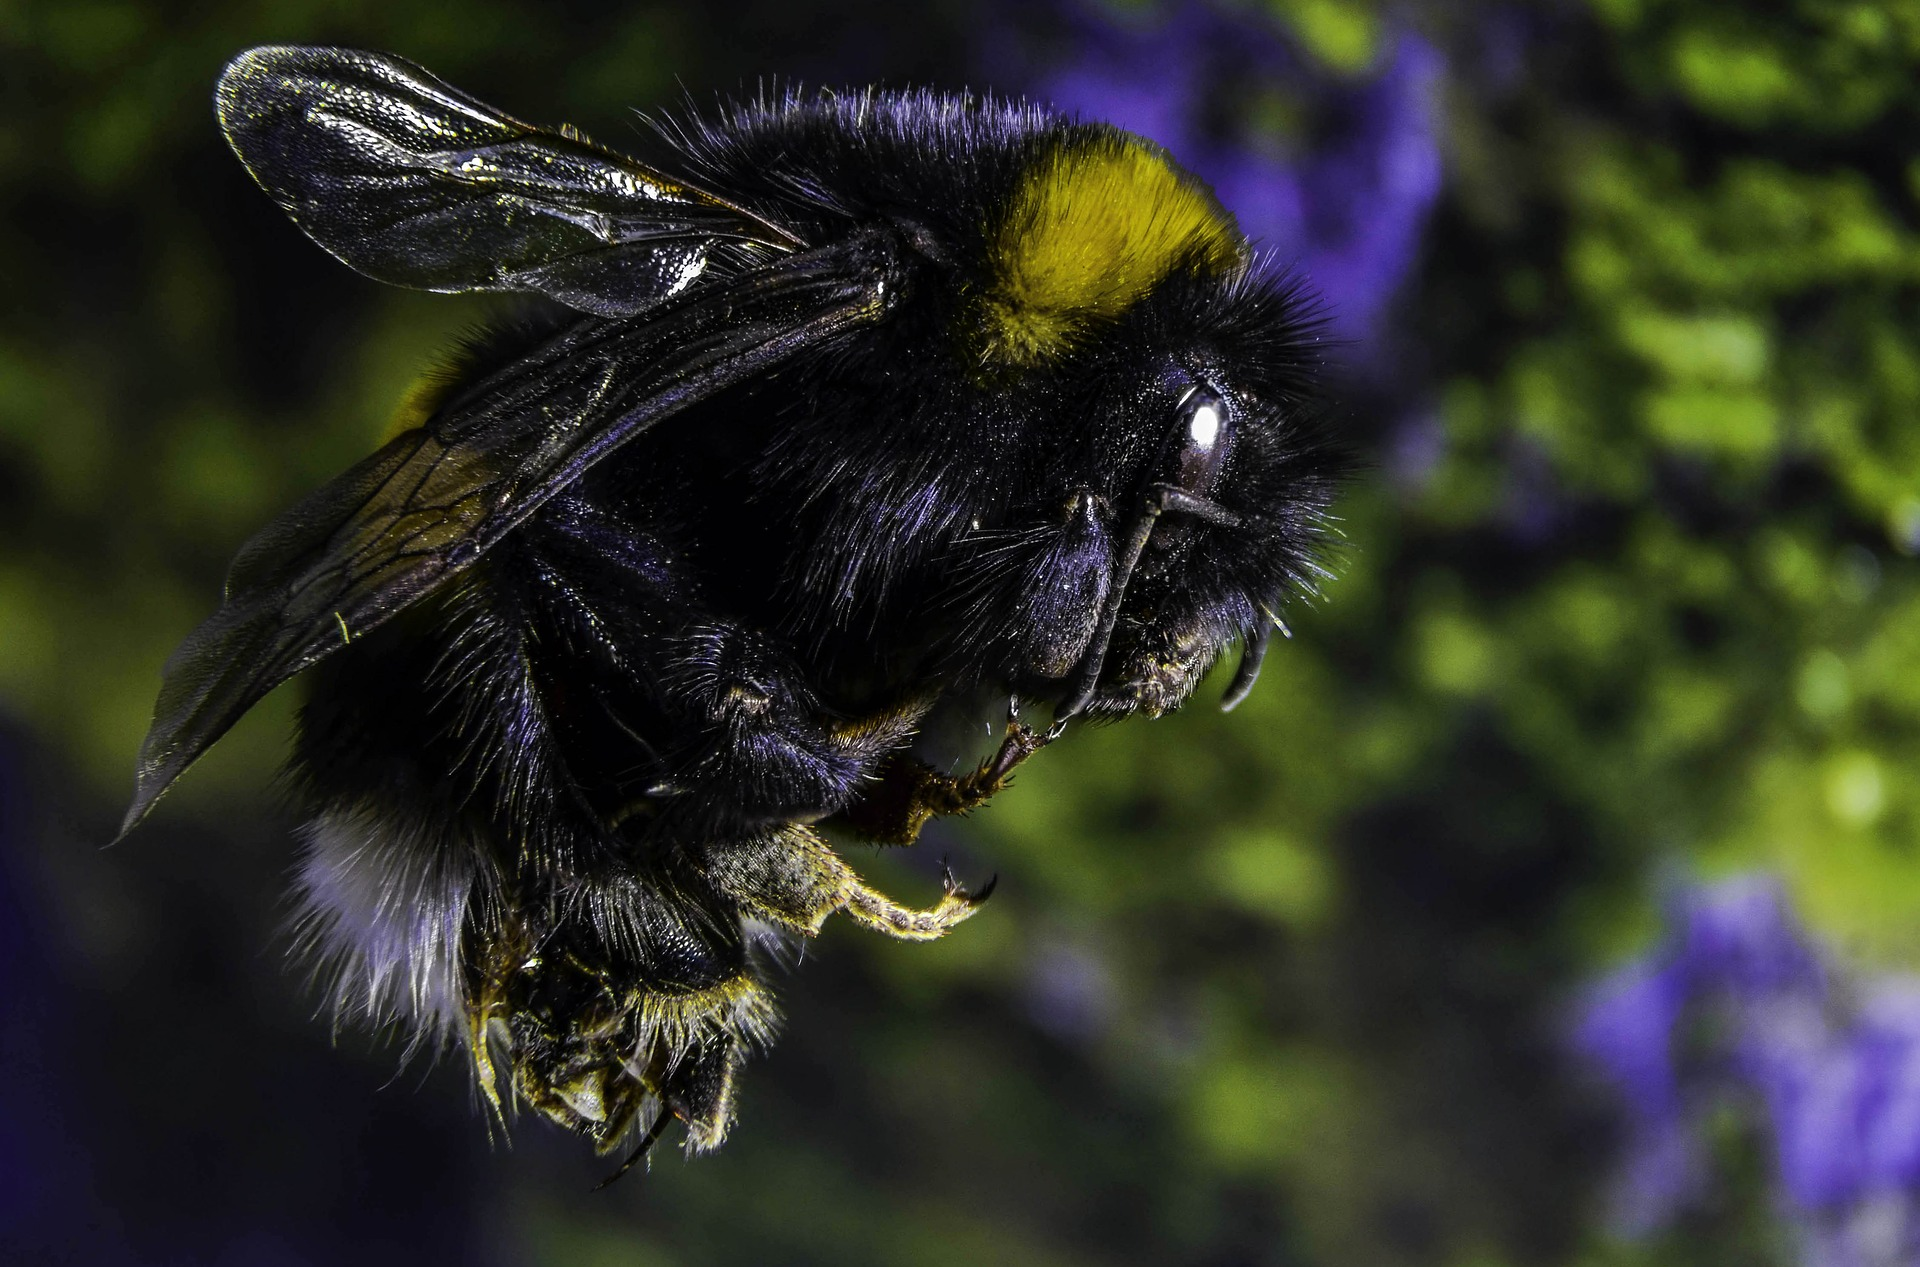 Image of black colored bumble bee flying